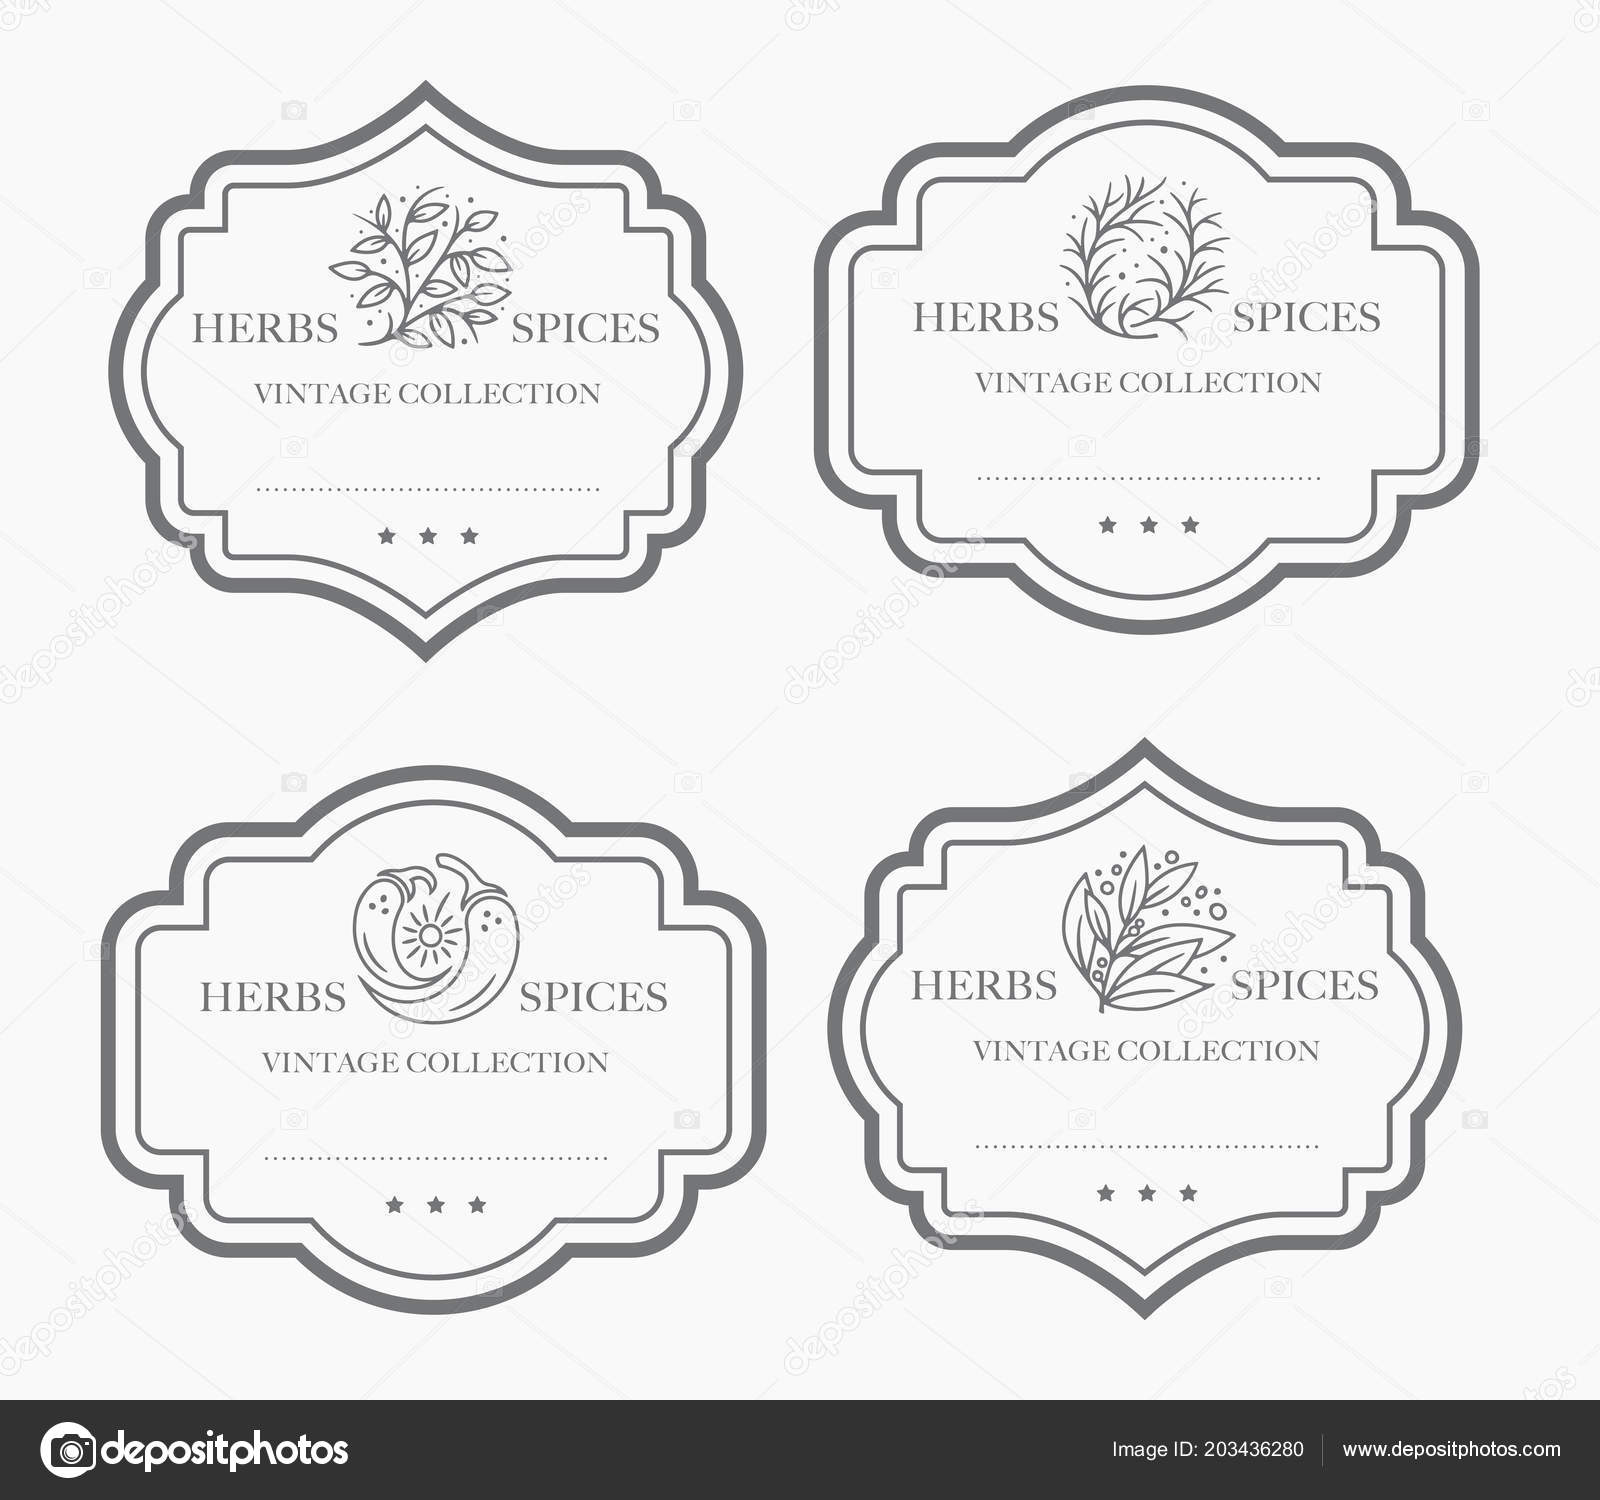 customizable black and white pantry label collection vintage packaging design templates for herbs and spices dried fruit vegetables nuts etc vector by